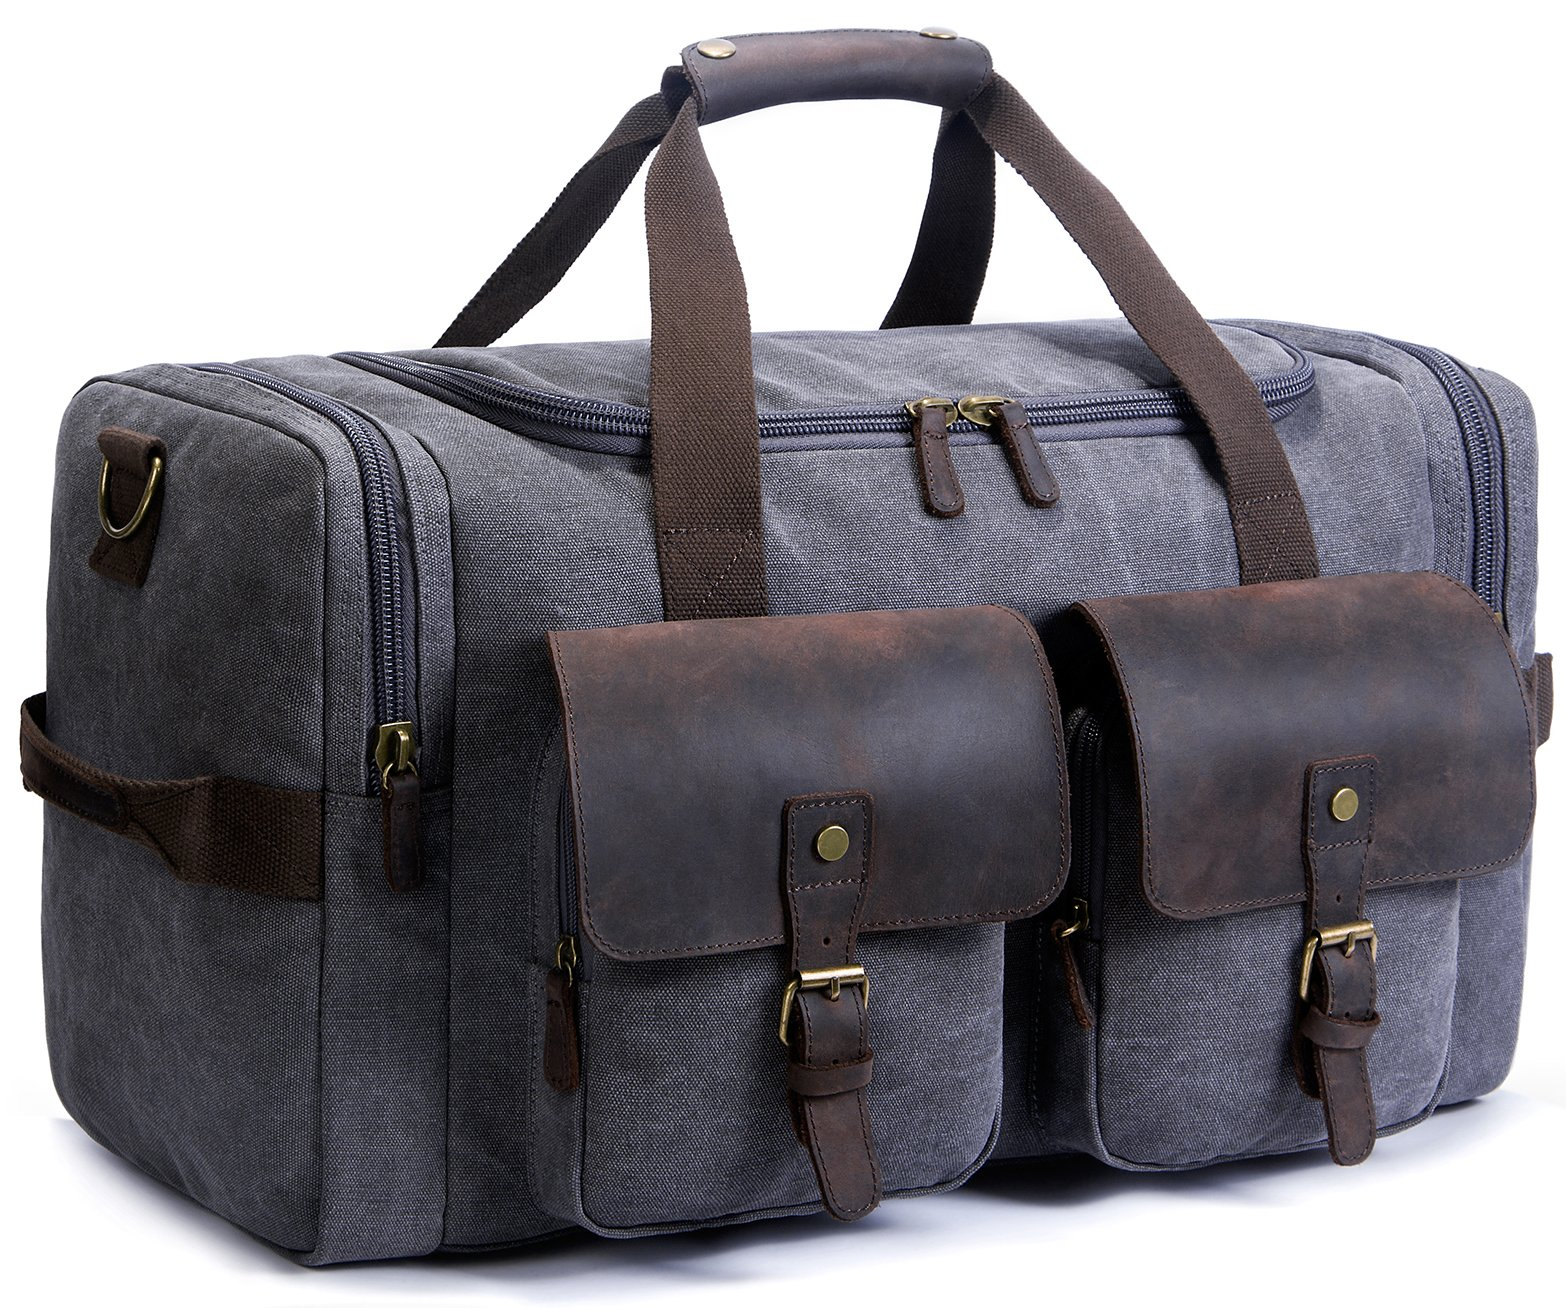 SUVOM Canvas Duffle Bag Leather Weekend Bag Carry On Travel Bag Luggage  Oversized Holdalls for Men 00e650dbe3ee1